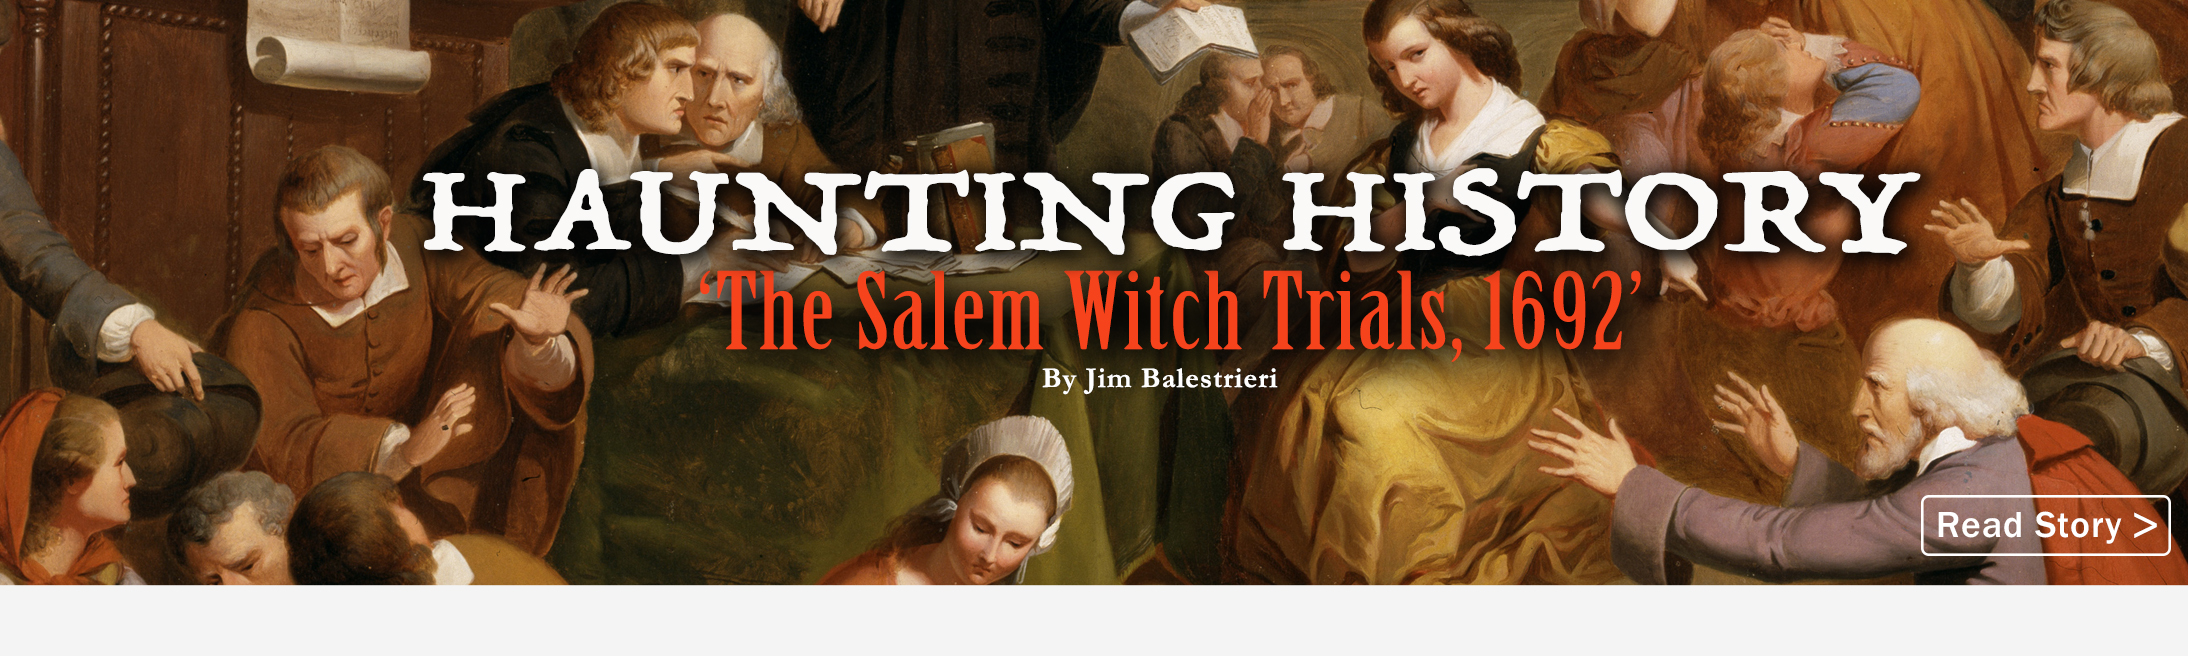 Haunting History: 'The Salem Witch Trials, 1692'